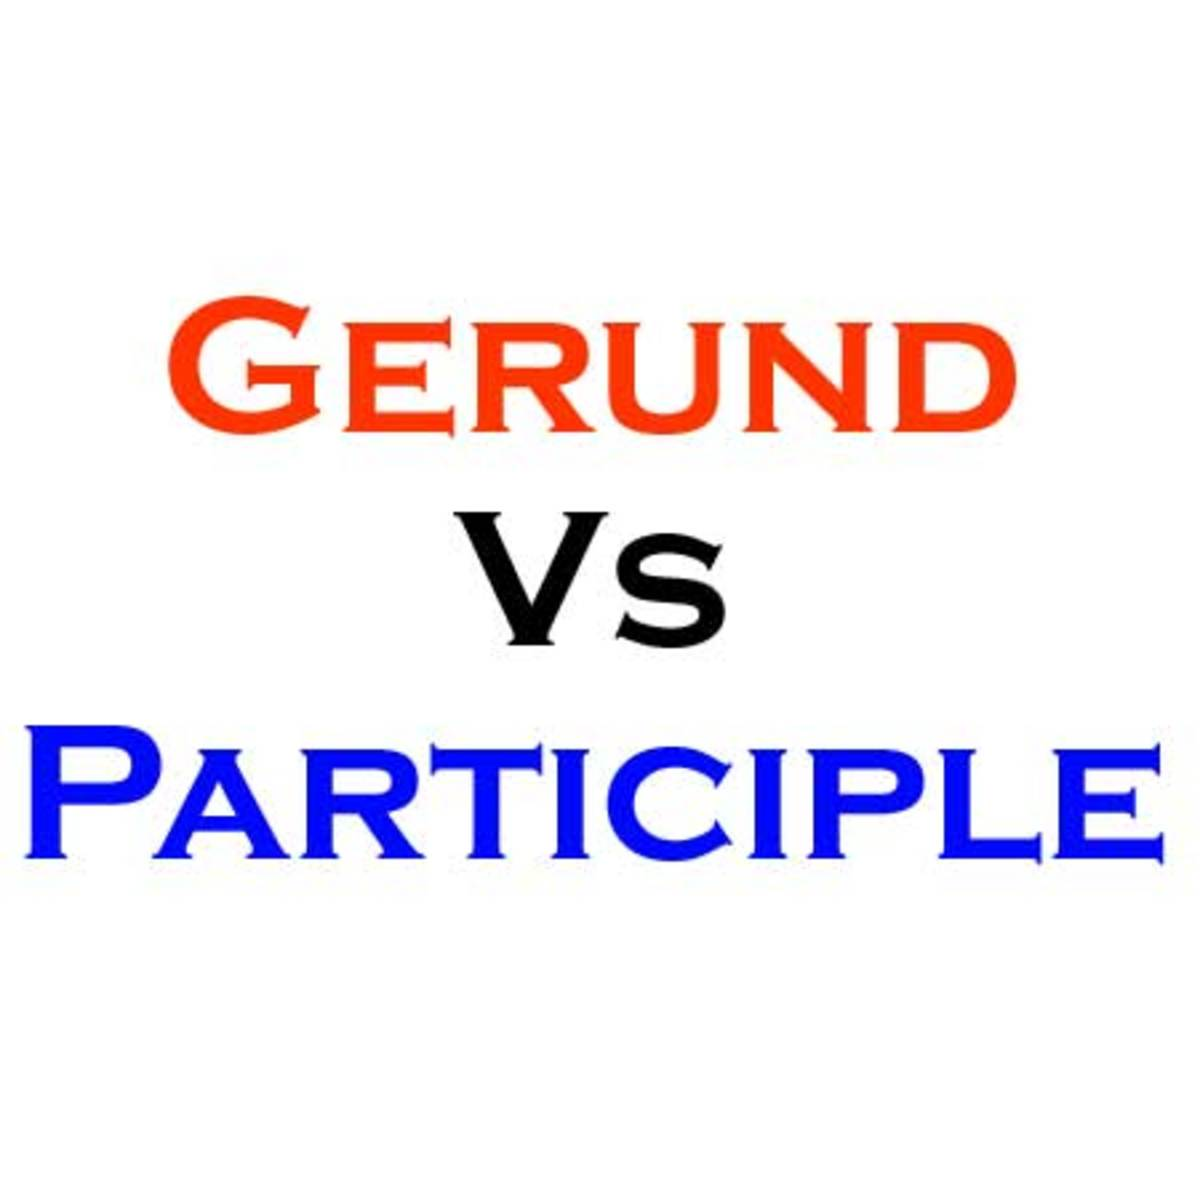 What's the difference between a Gerund and a Participle?